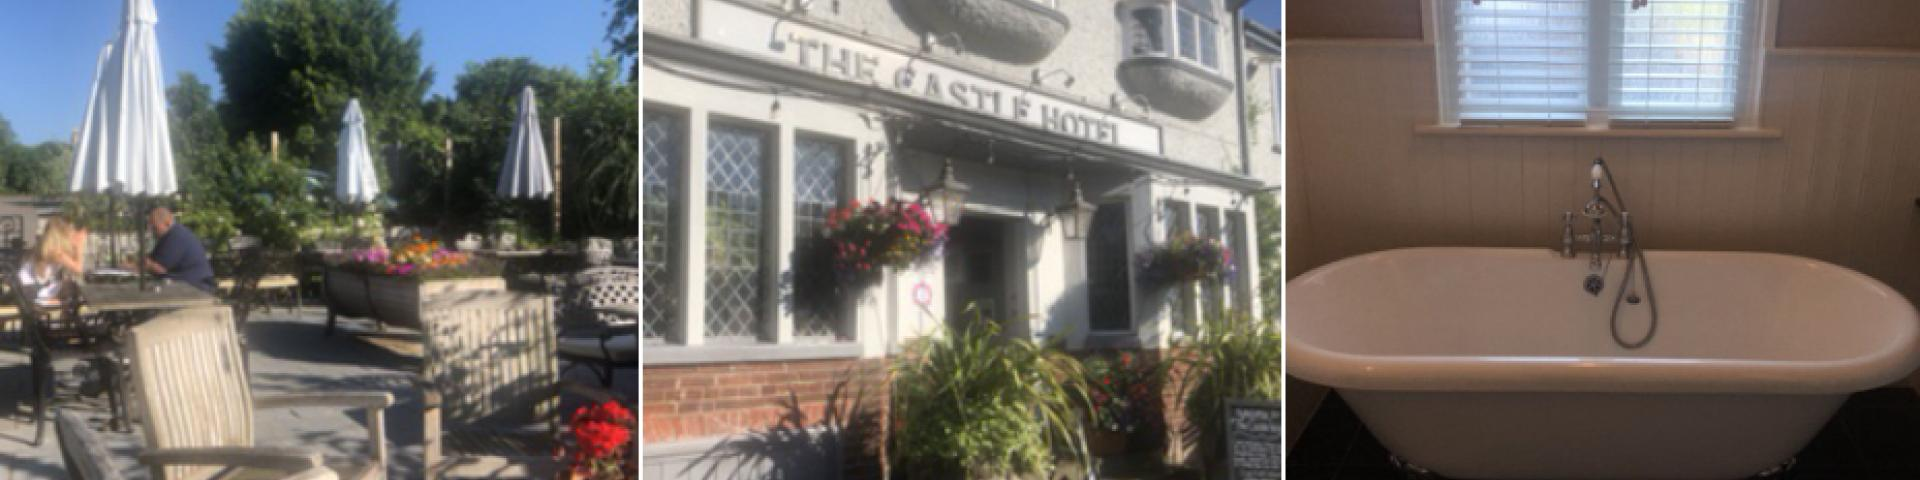 Castle Hotel, Eynsford, Dartford